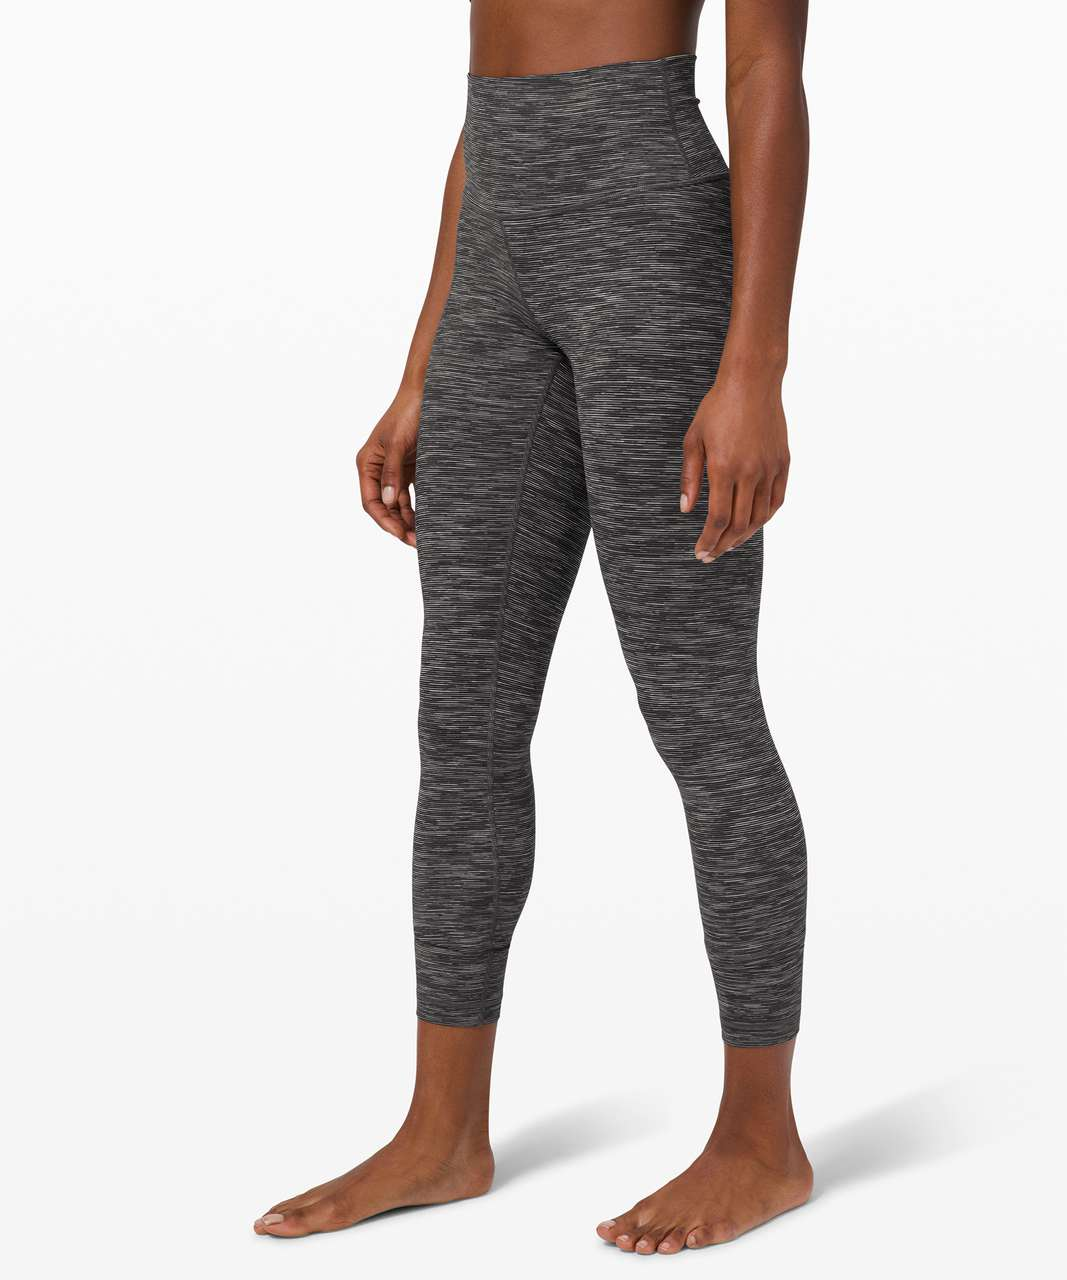 "Lululemon Wunder Under High-Rise Tight 25"" *Luxtreme - Wee Are From Space Dark Carbon Ice Grey"